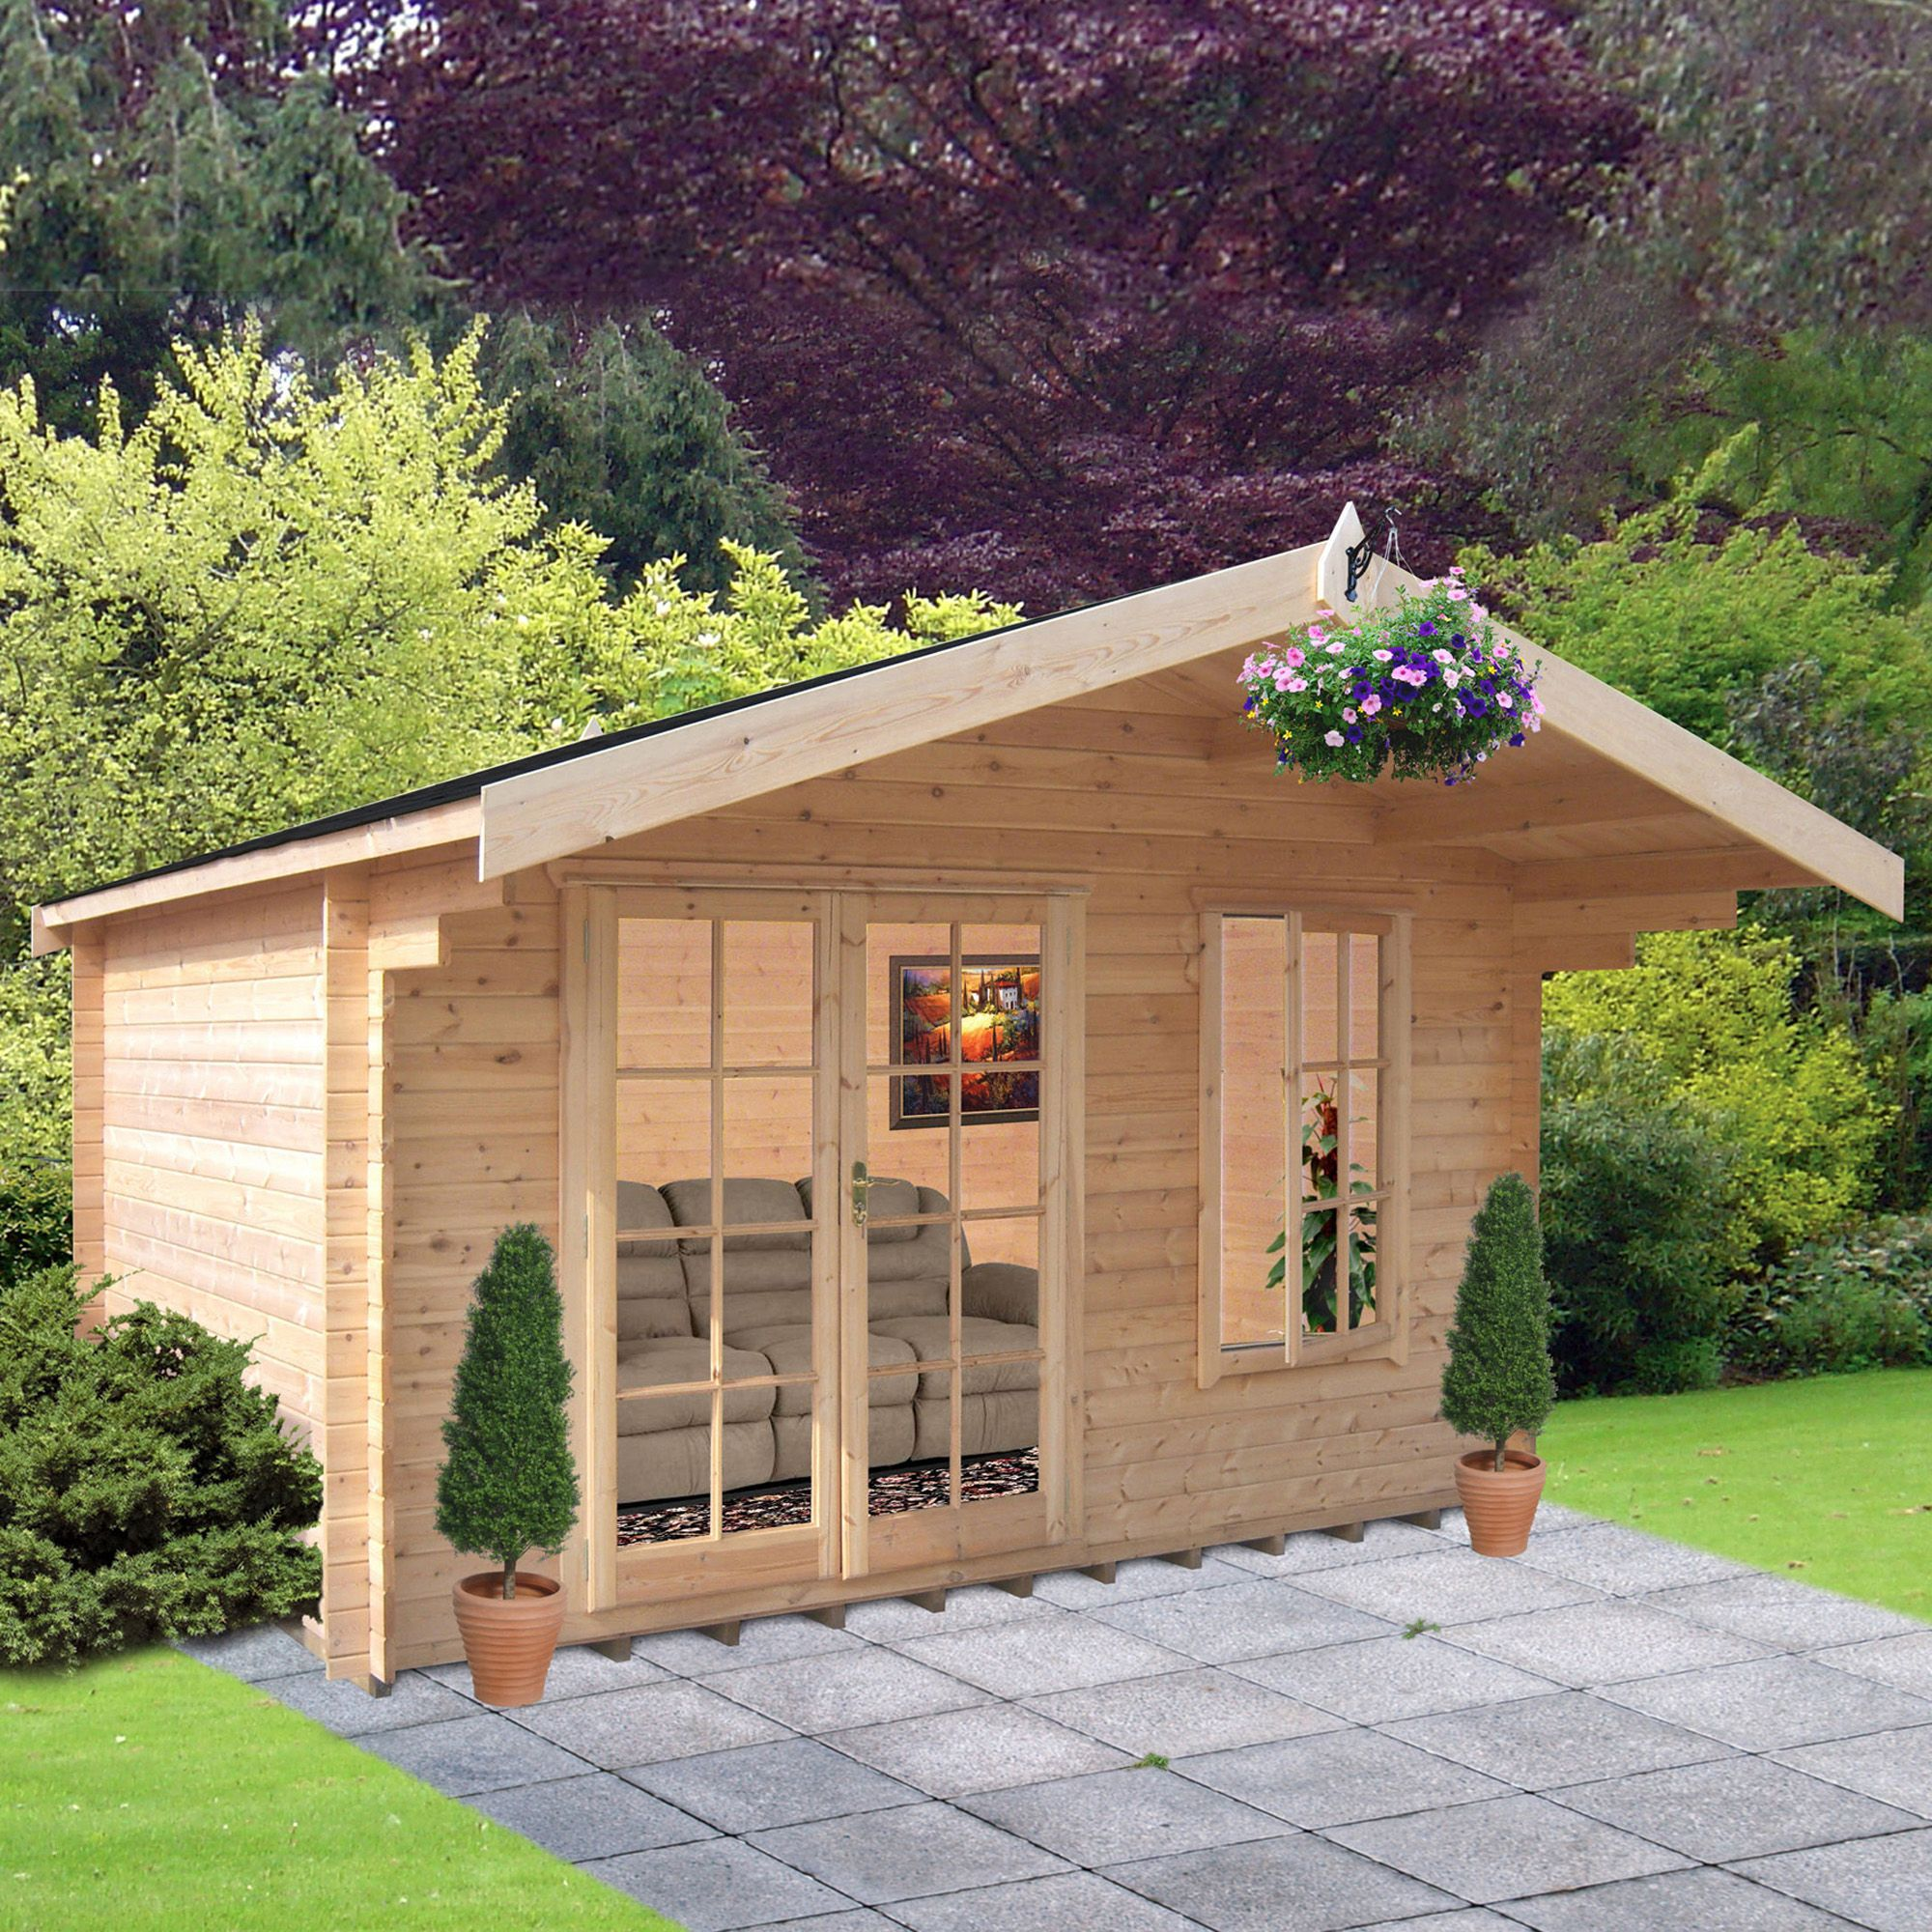 12x8 Cannock 28mm Tongue & Groove Log cabin